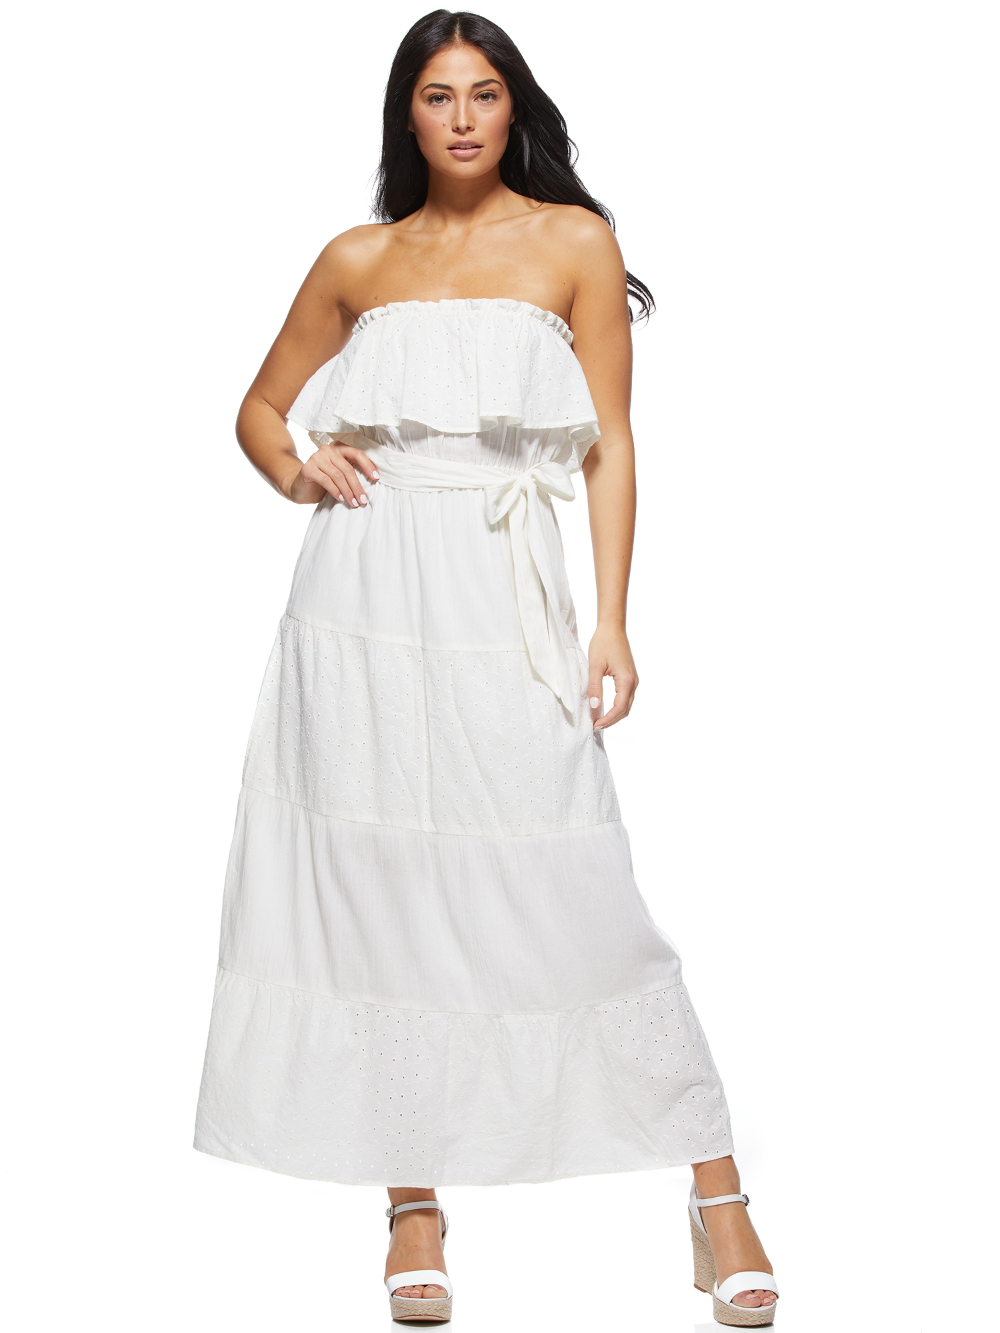 Free 2 Day Shipping Buy Sofia Jeans By Sofia Vergara Tiered Off The Shoulder Maxi Dress Women S At Walmart Co Eyelet Maxi Dress White Dress Summer Maxi Dress [ 1333 x 1000 Pixel ]